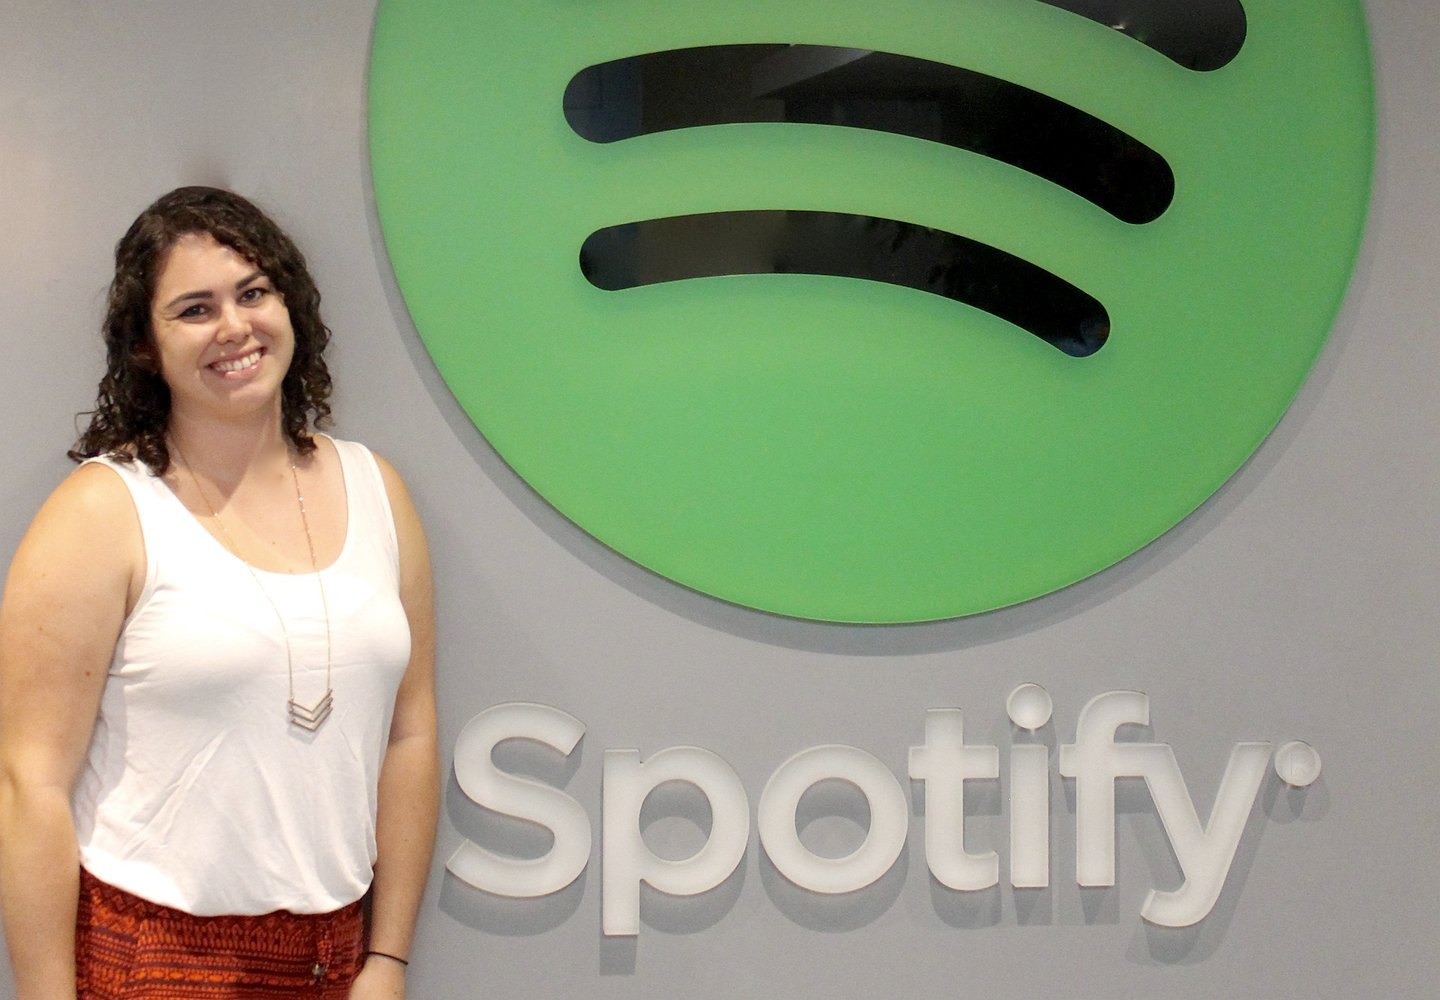 Beth Mahoney of Spotify -- A 1stFive Profile